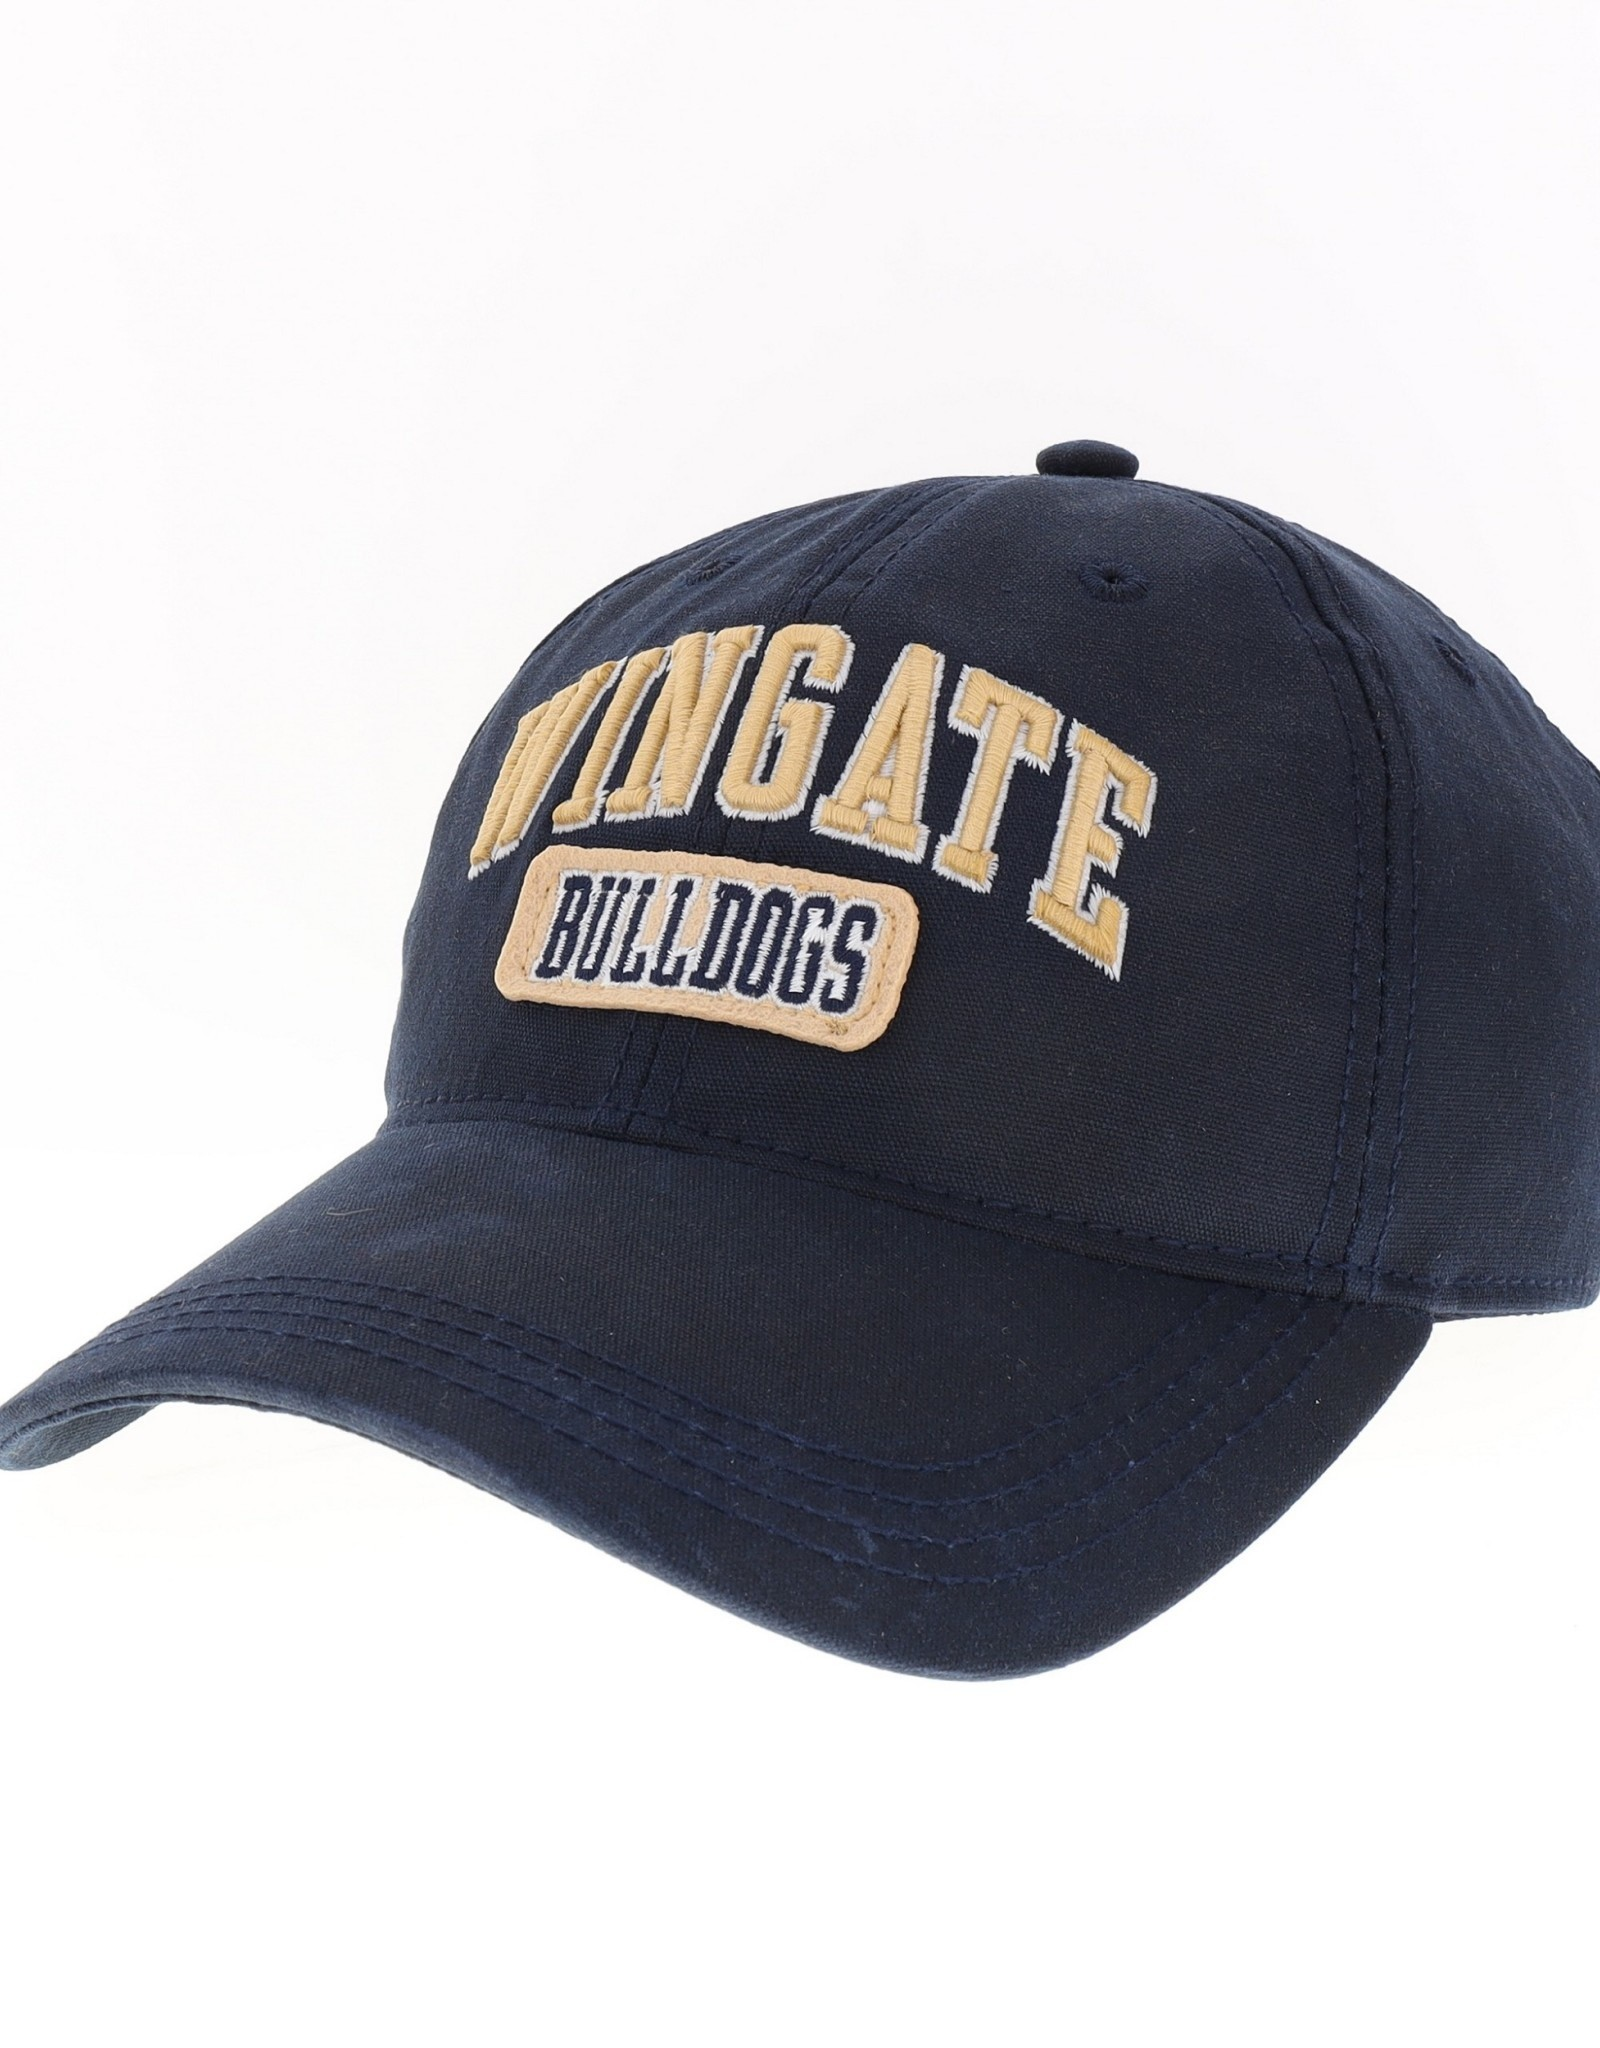 Legacy Navy Wingate Bulldogs Unstructured Adjustable Waxed Cotton Hat